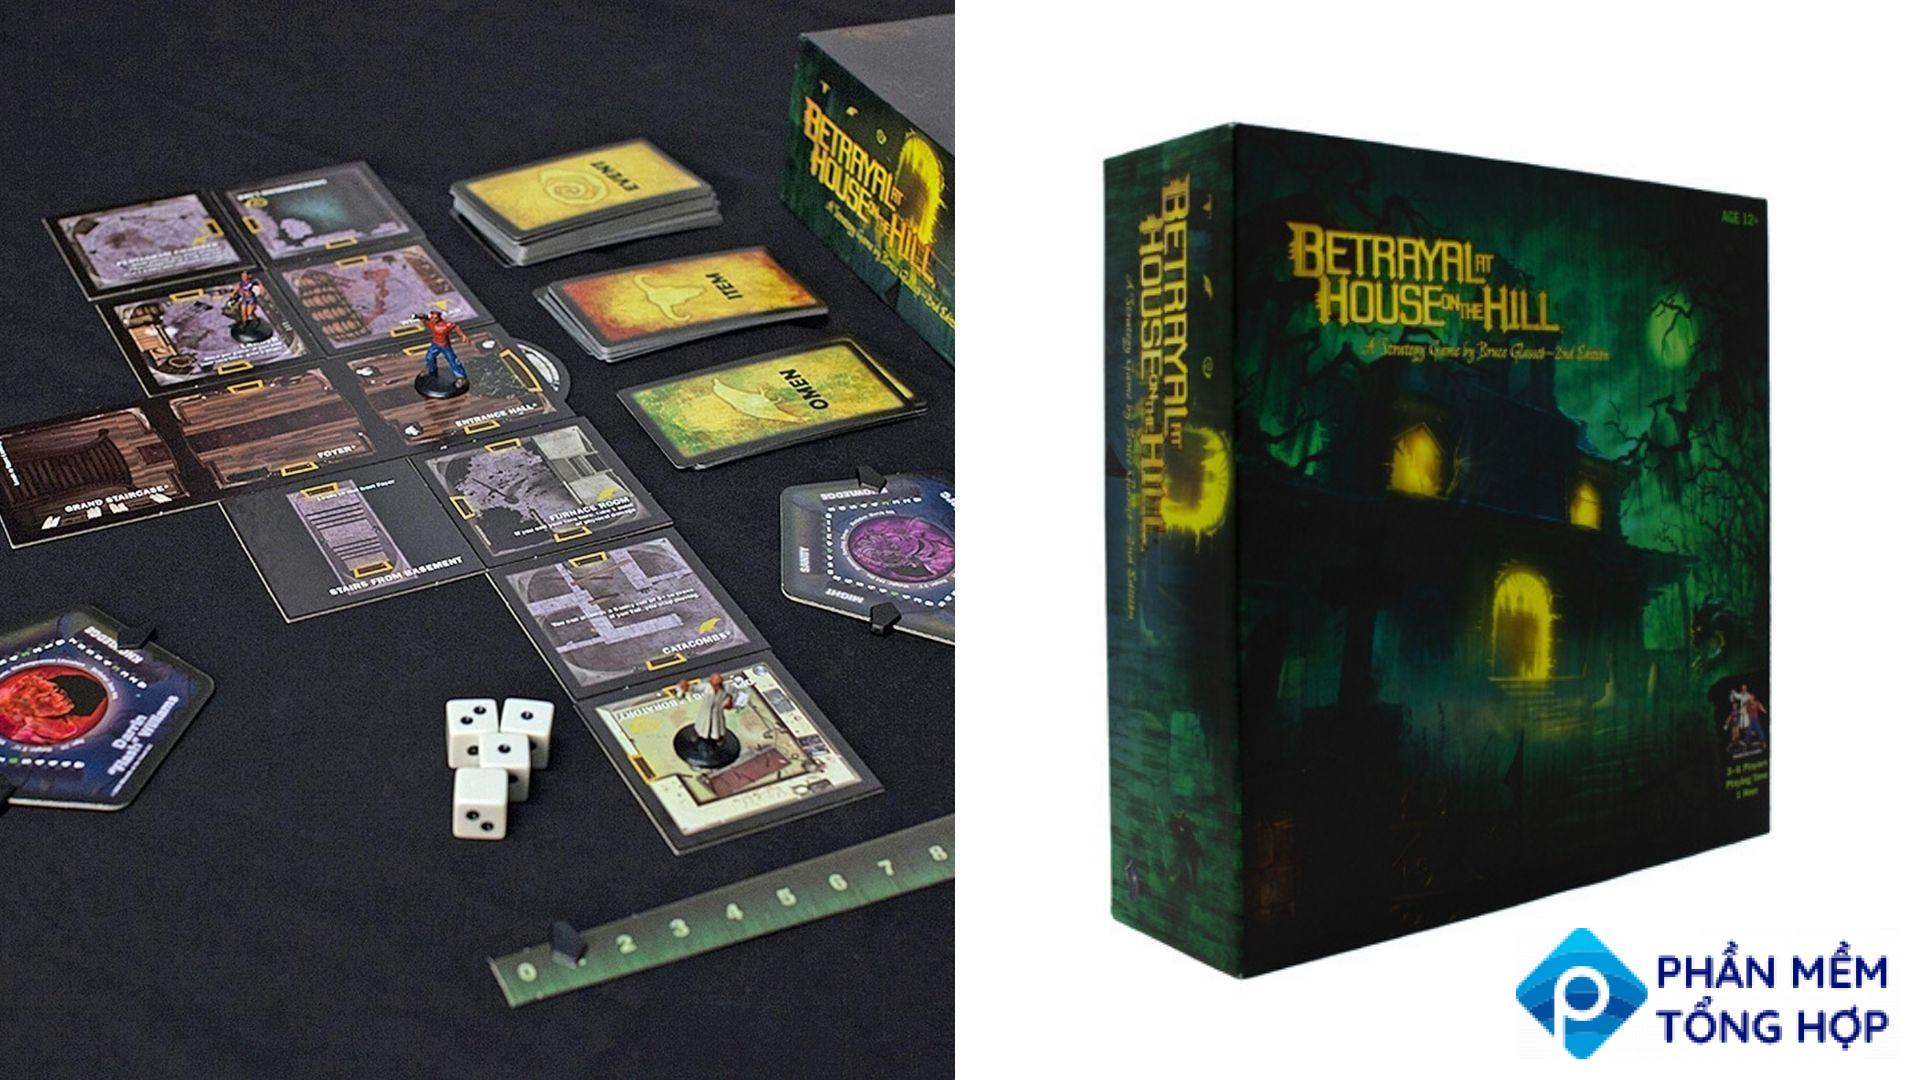 The gameboard and box for 'Betrayal at House on the Hill'